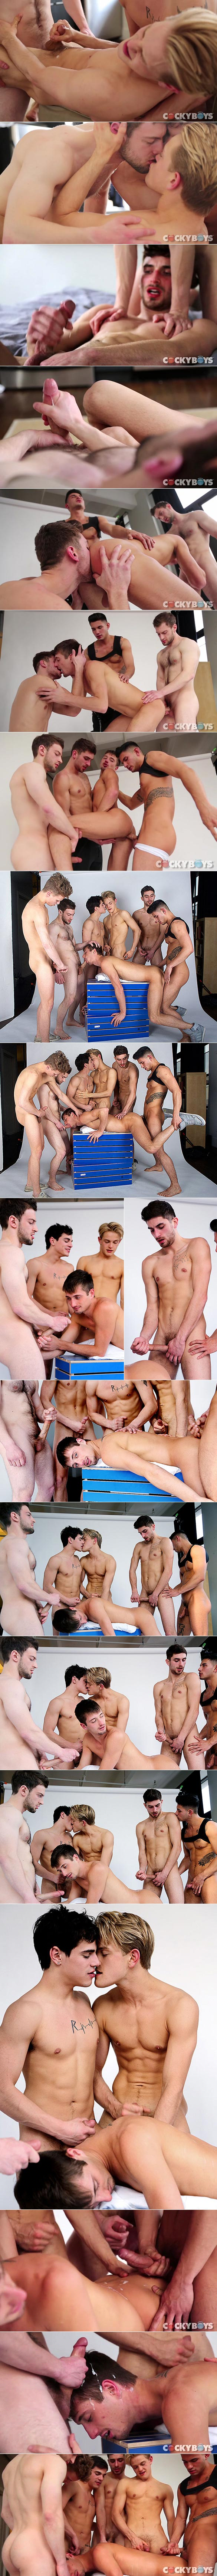 "Cocky Boys: Bravo Delta, Dillon Rossi, Jett Black, JD Phoenix, Levi Karter, Max Ryder and Ricky Roman in ""Boys to Adore Galore"""